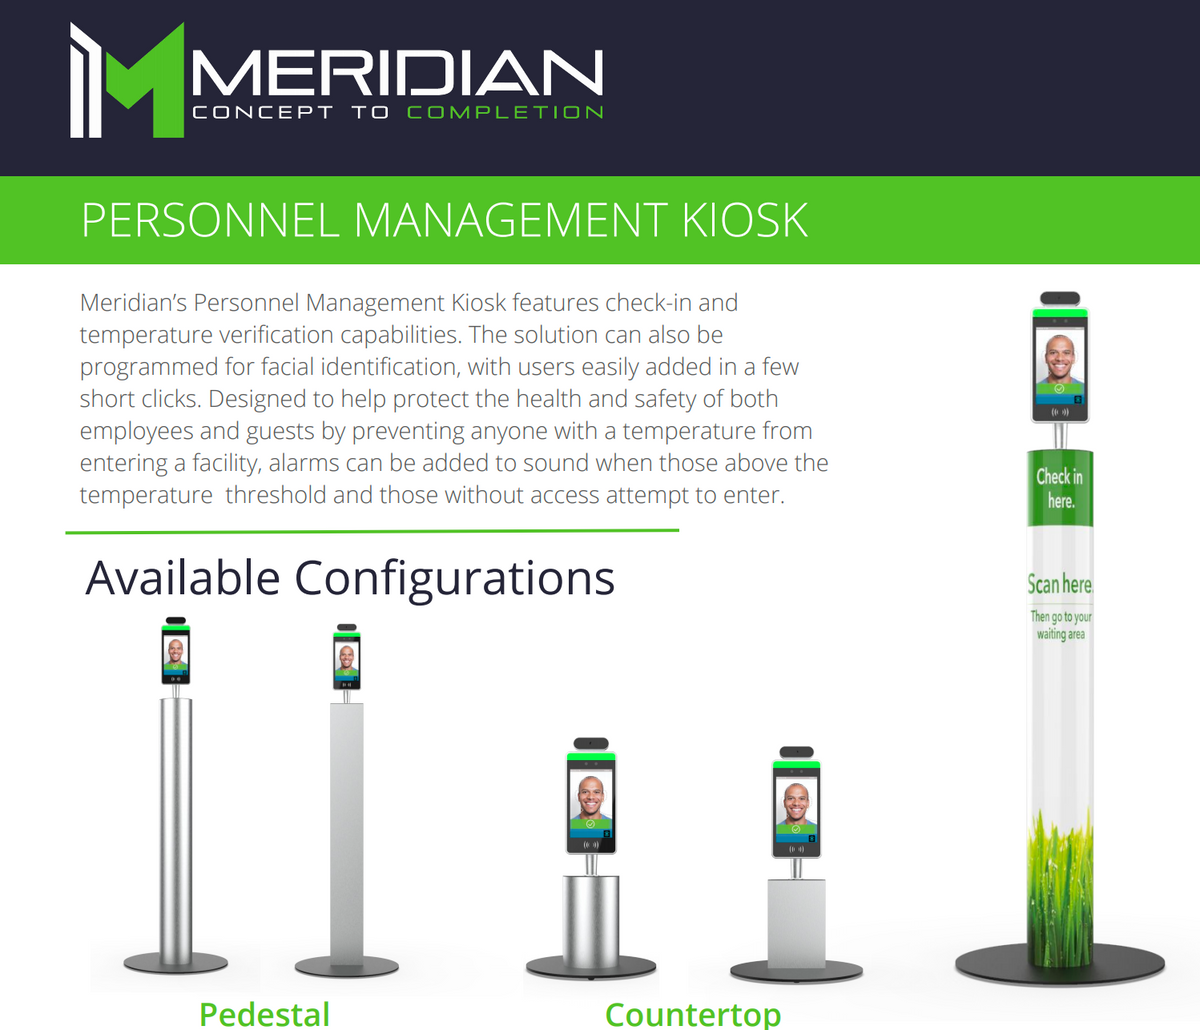 RTW9 - Meridian/ PERSONNEL MANAGEMENT KIOSK (Shipping cost Included)